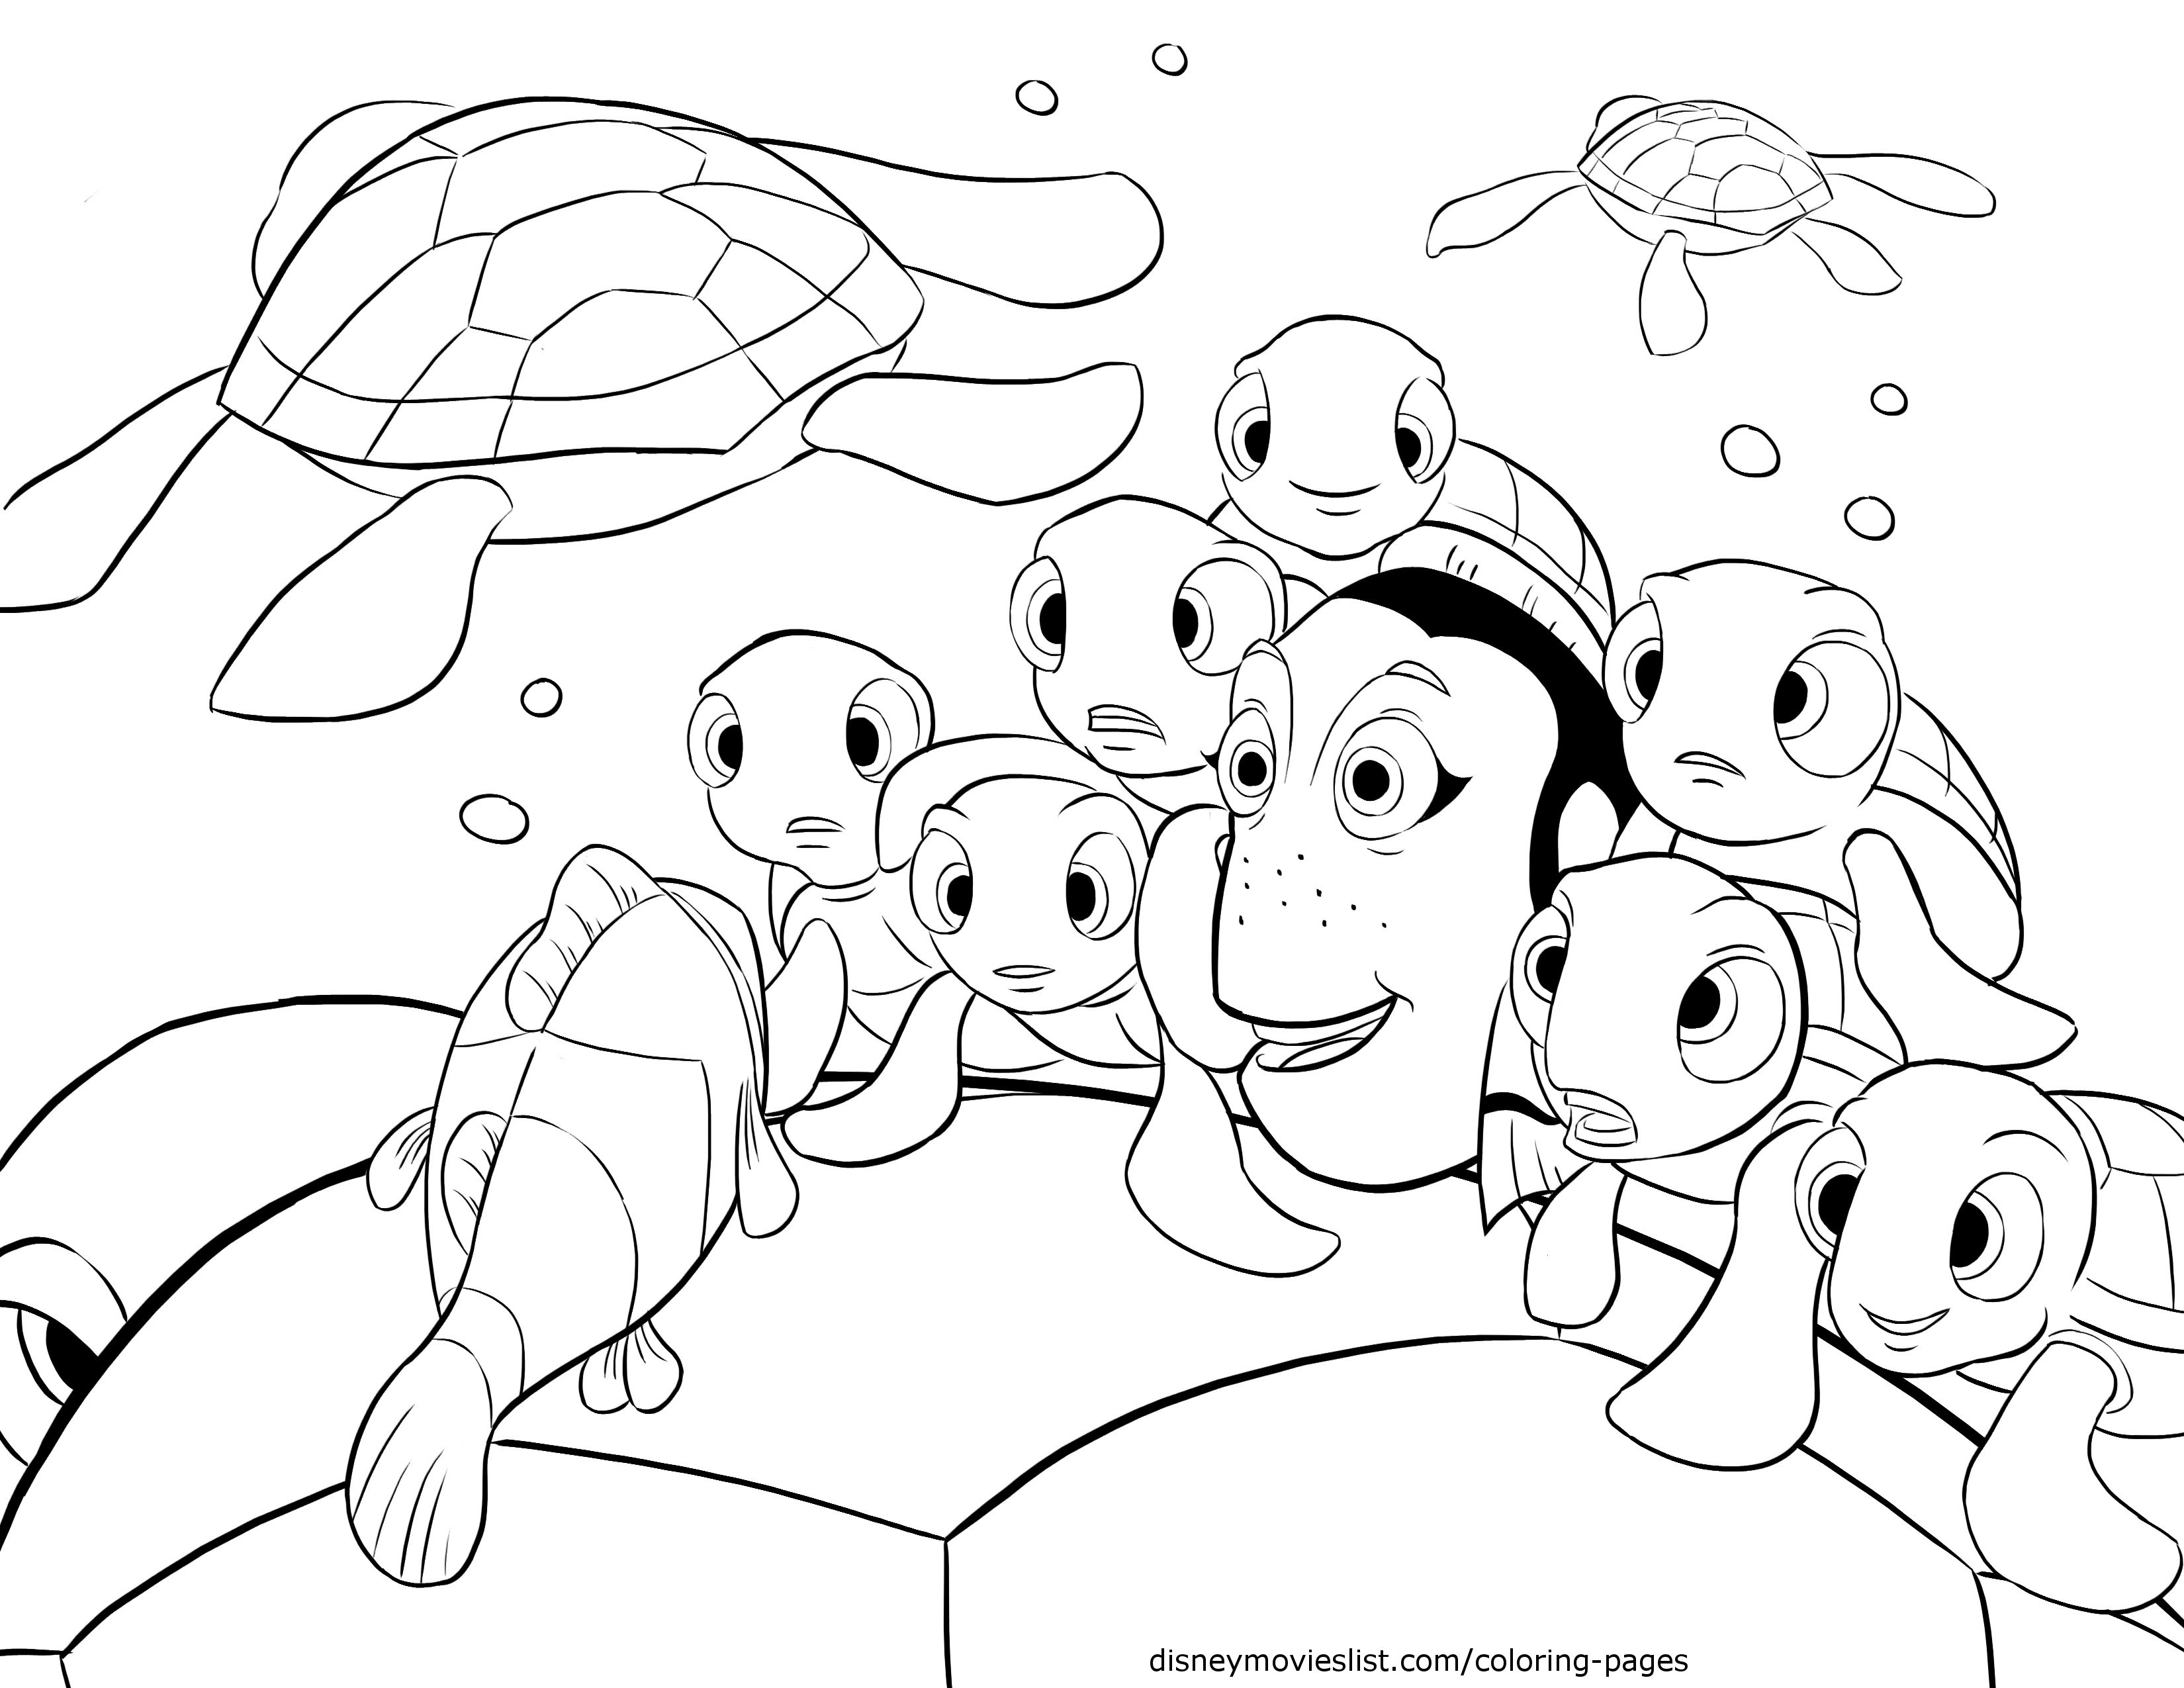 3300x2550 Finding Nemo Dory Coloring Pages Crush Squirt Telling Stories